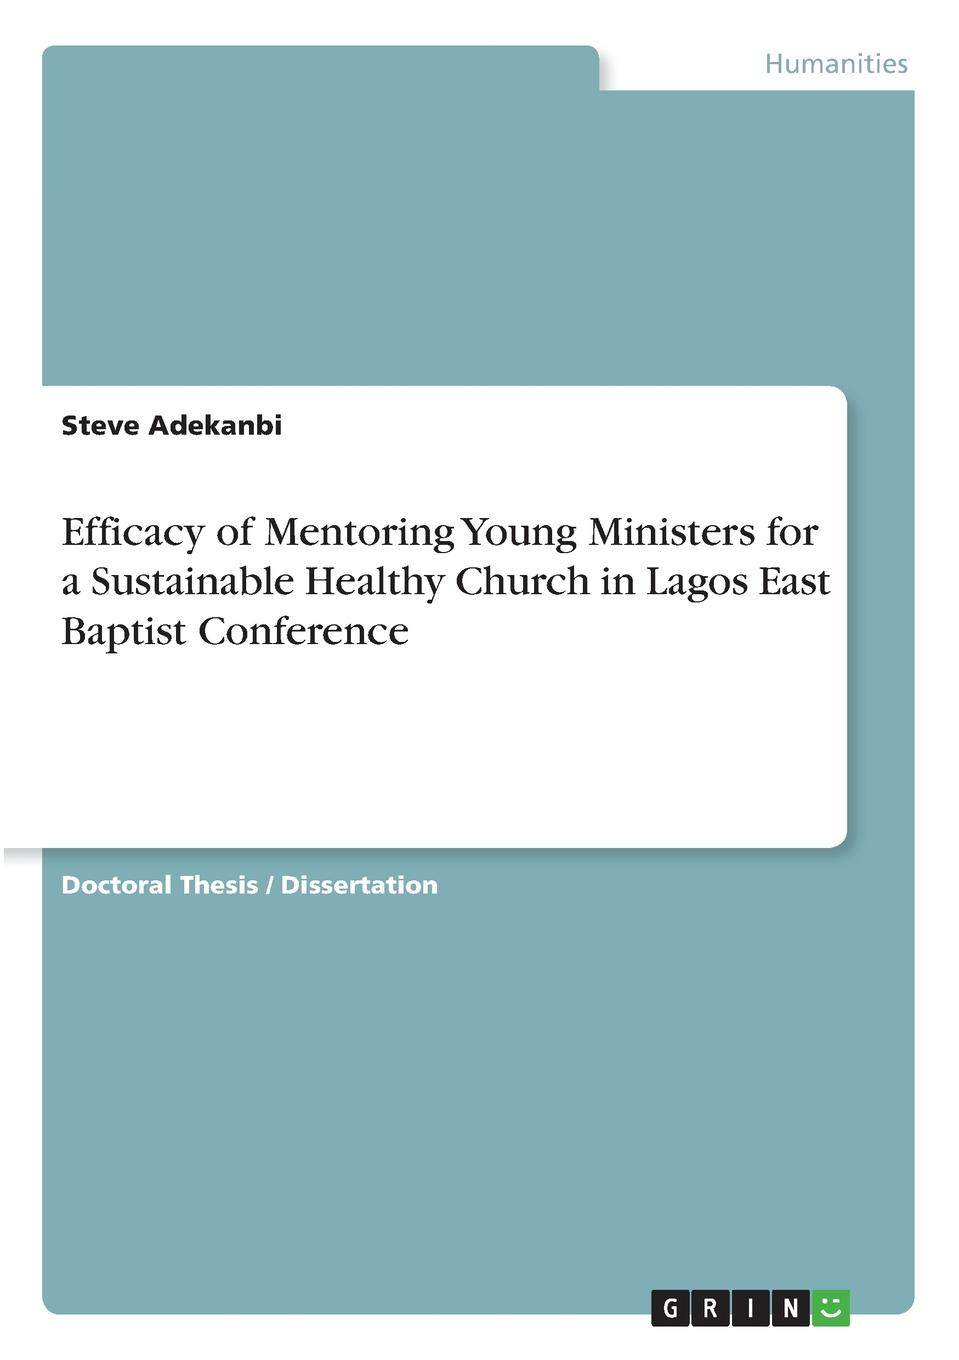 Steve Adekanbi Efficacy of Mentoring Young Ministers for a Sustainable Healthy Church in Lagos East Baptist Conference dave browning hybrid church the fusion of intimacy and impact